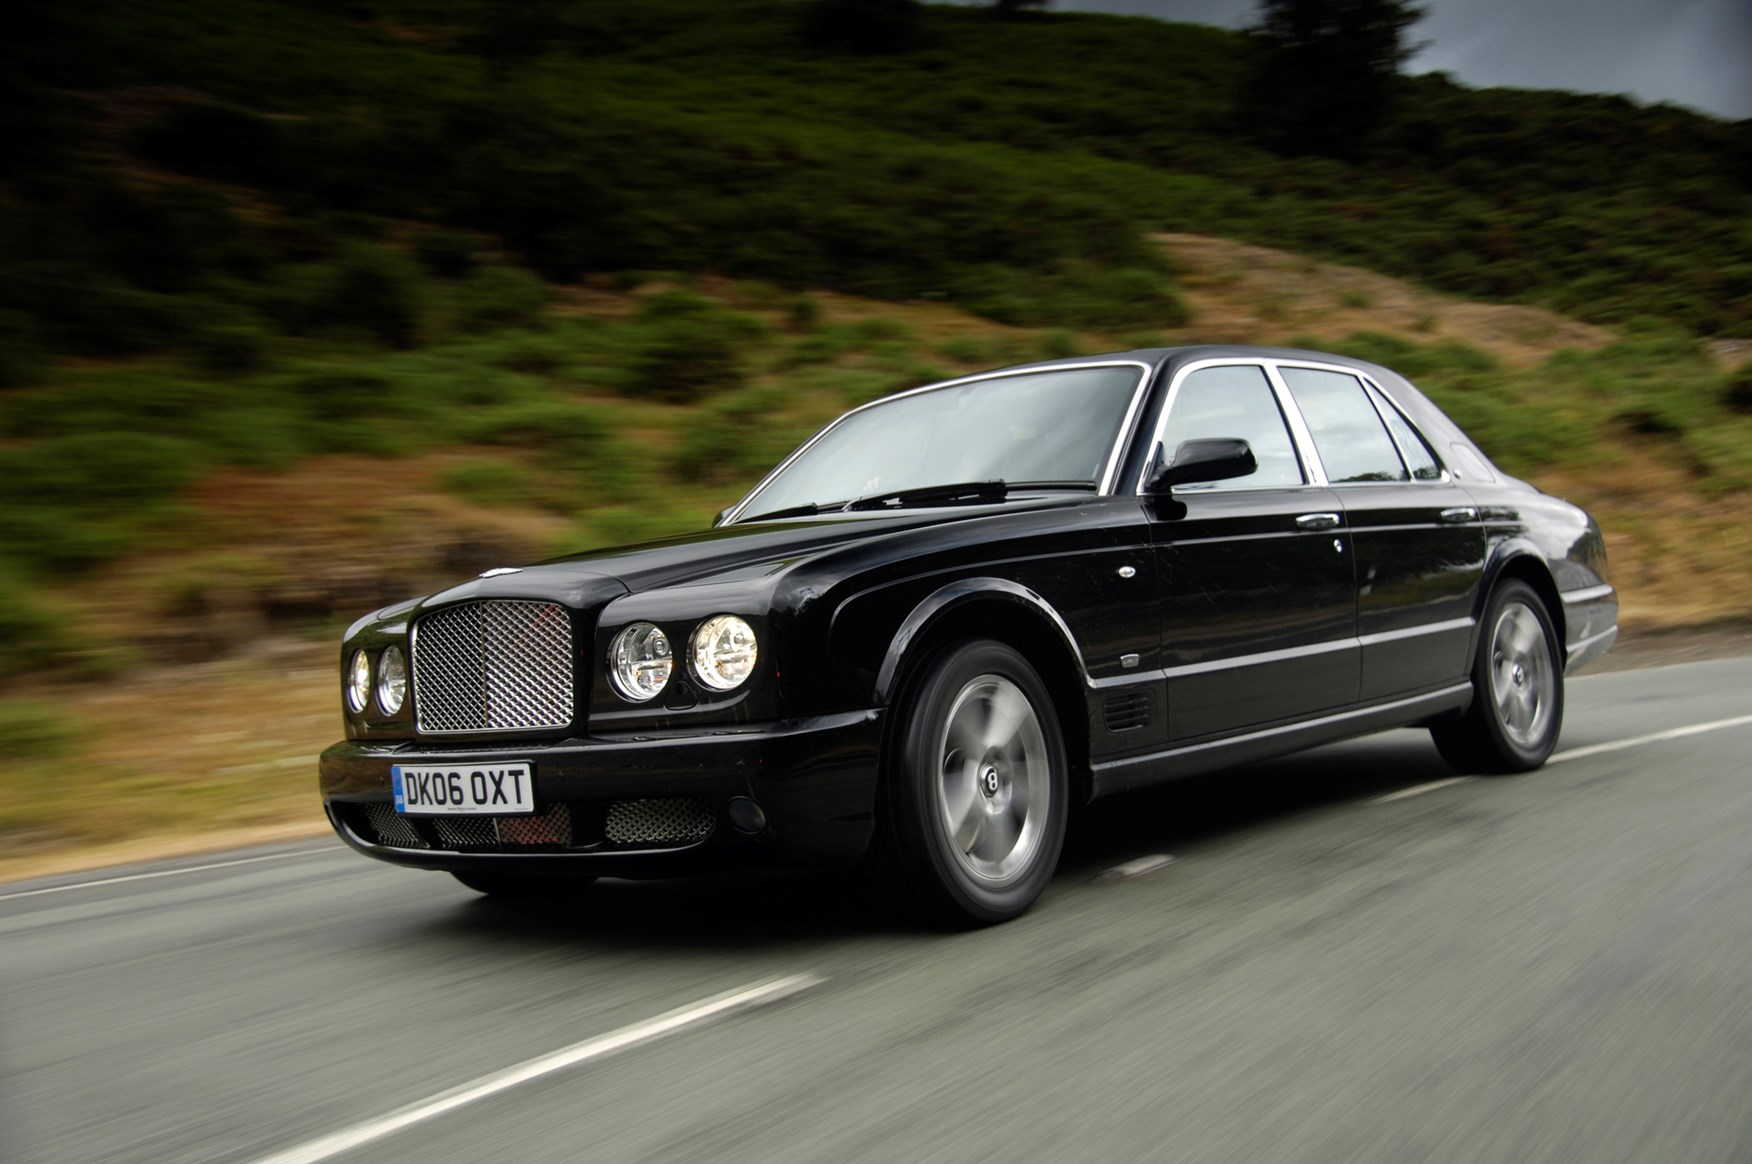 1_91e5f910 959b 45af 9 bentley arnage saloon review (1998 2009) parkers 1999 Bentley Arnage Interior at readyjetset.co